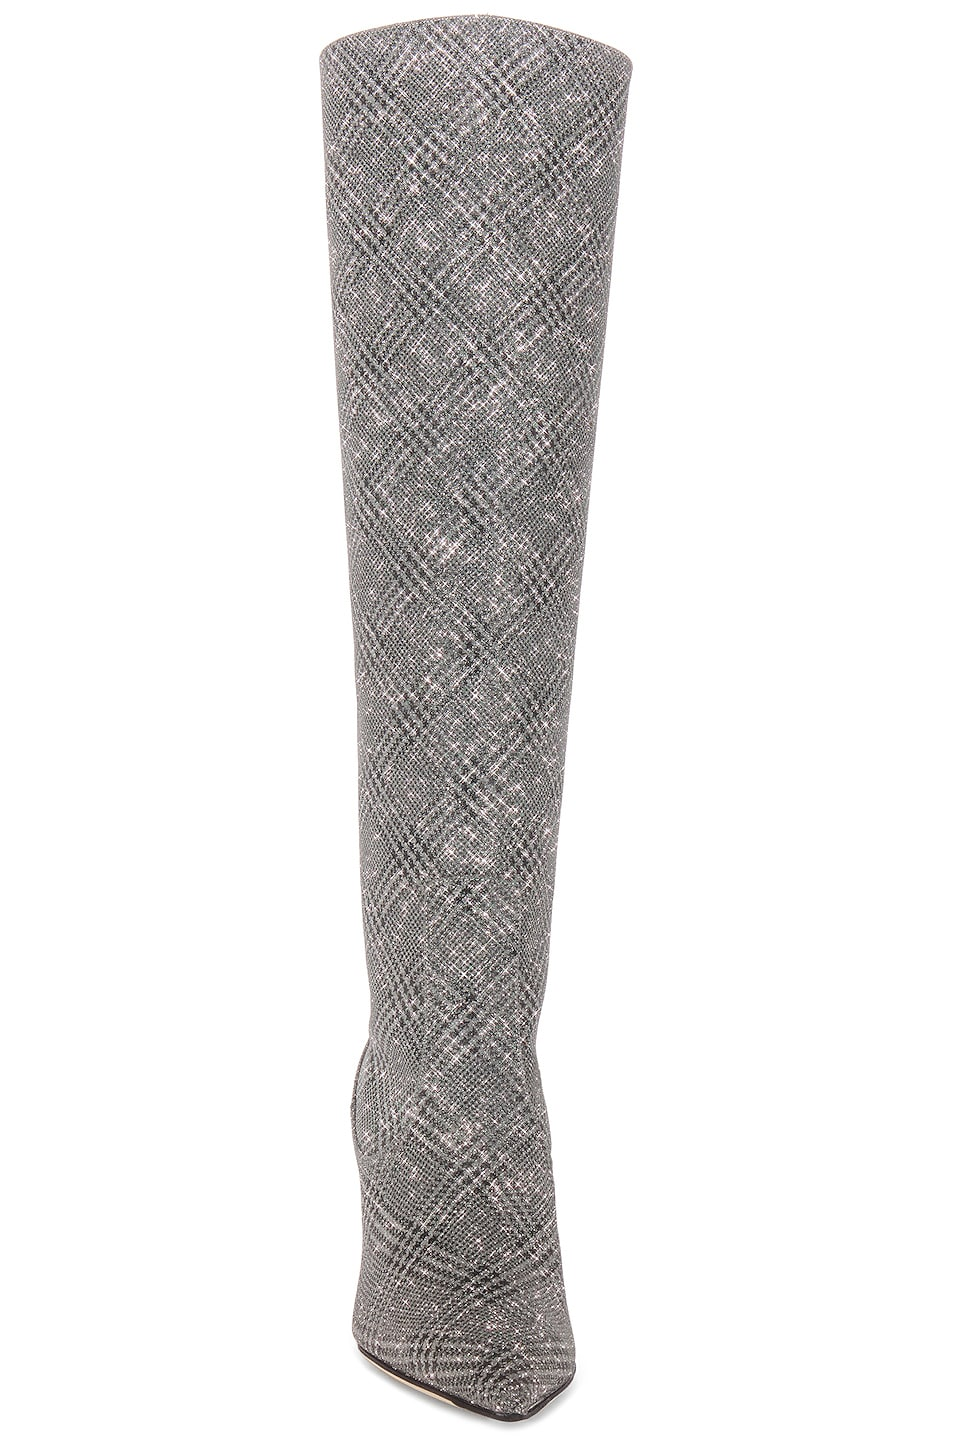 Image 5 of Jimmy Choo Mavis 85 Glitter Boots in Silver